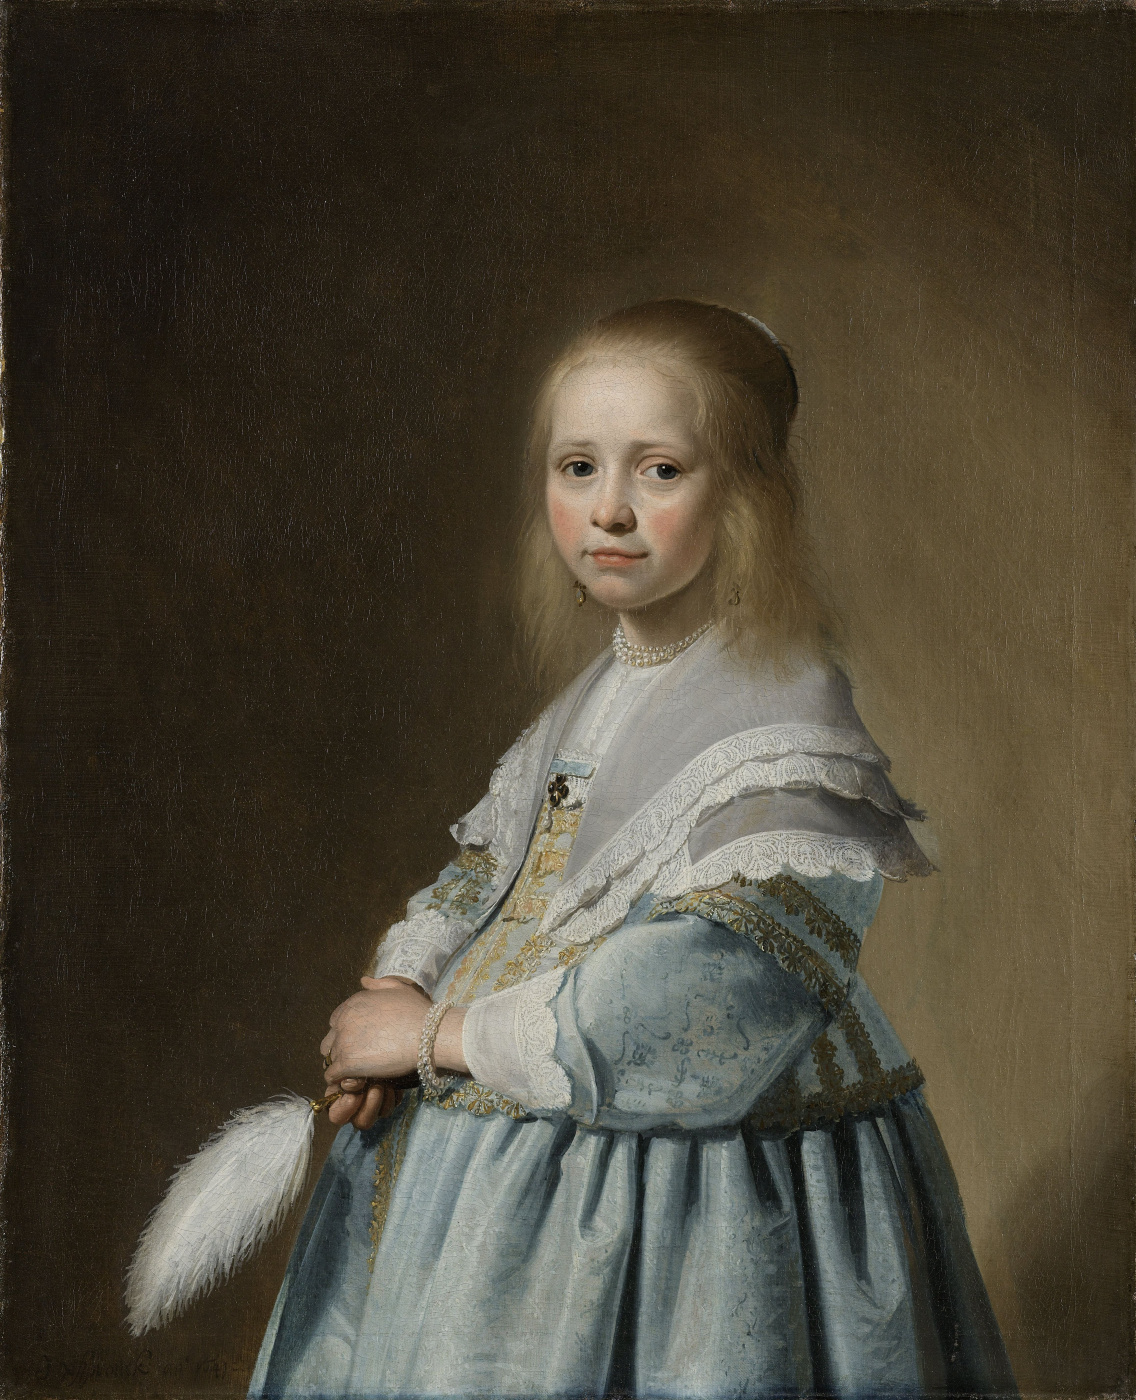 Ian Cornelis Versprop. Portrait of a girl in a blue dress